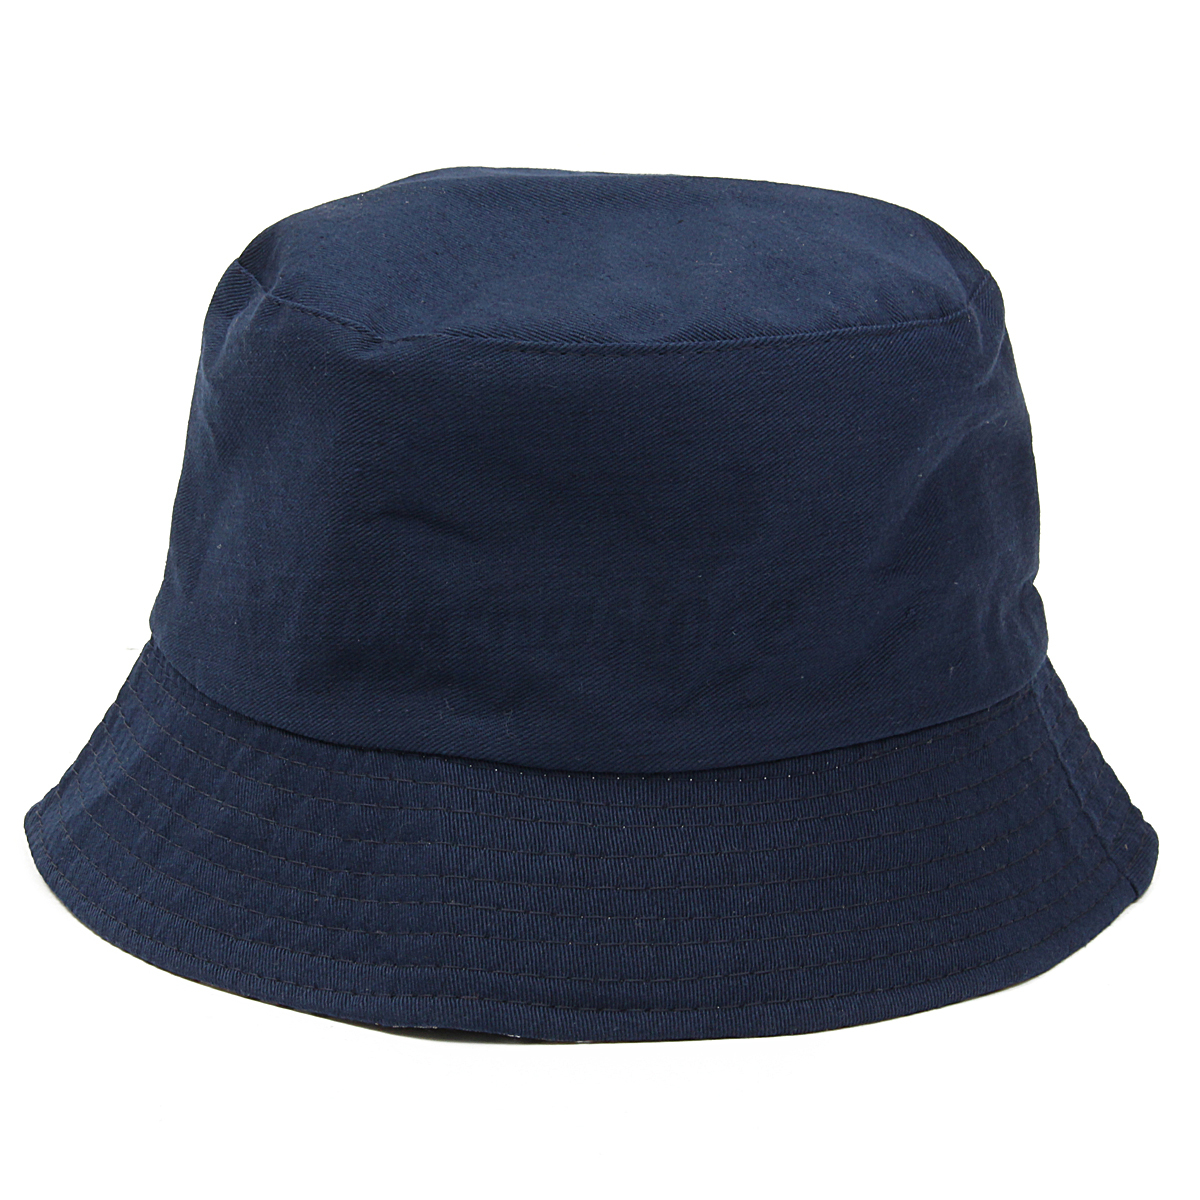 Cotton adults bucket hat summer fishing hunting outdoor for Fishing bucket hat